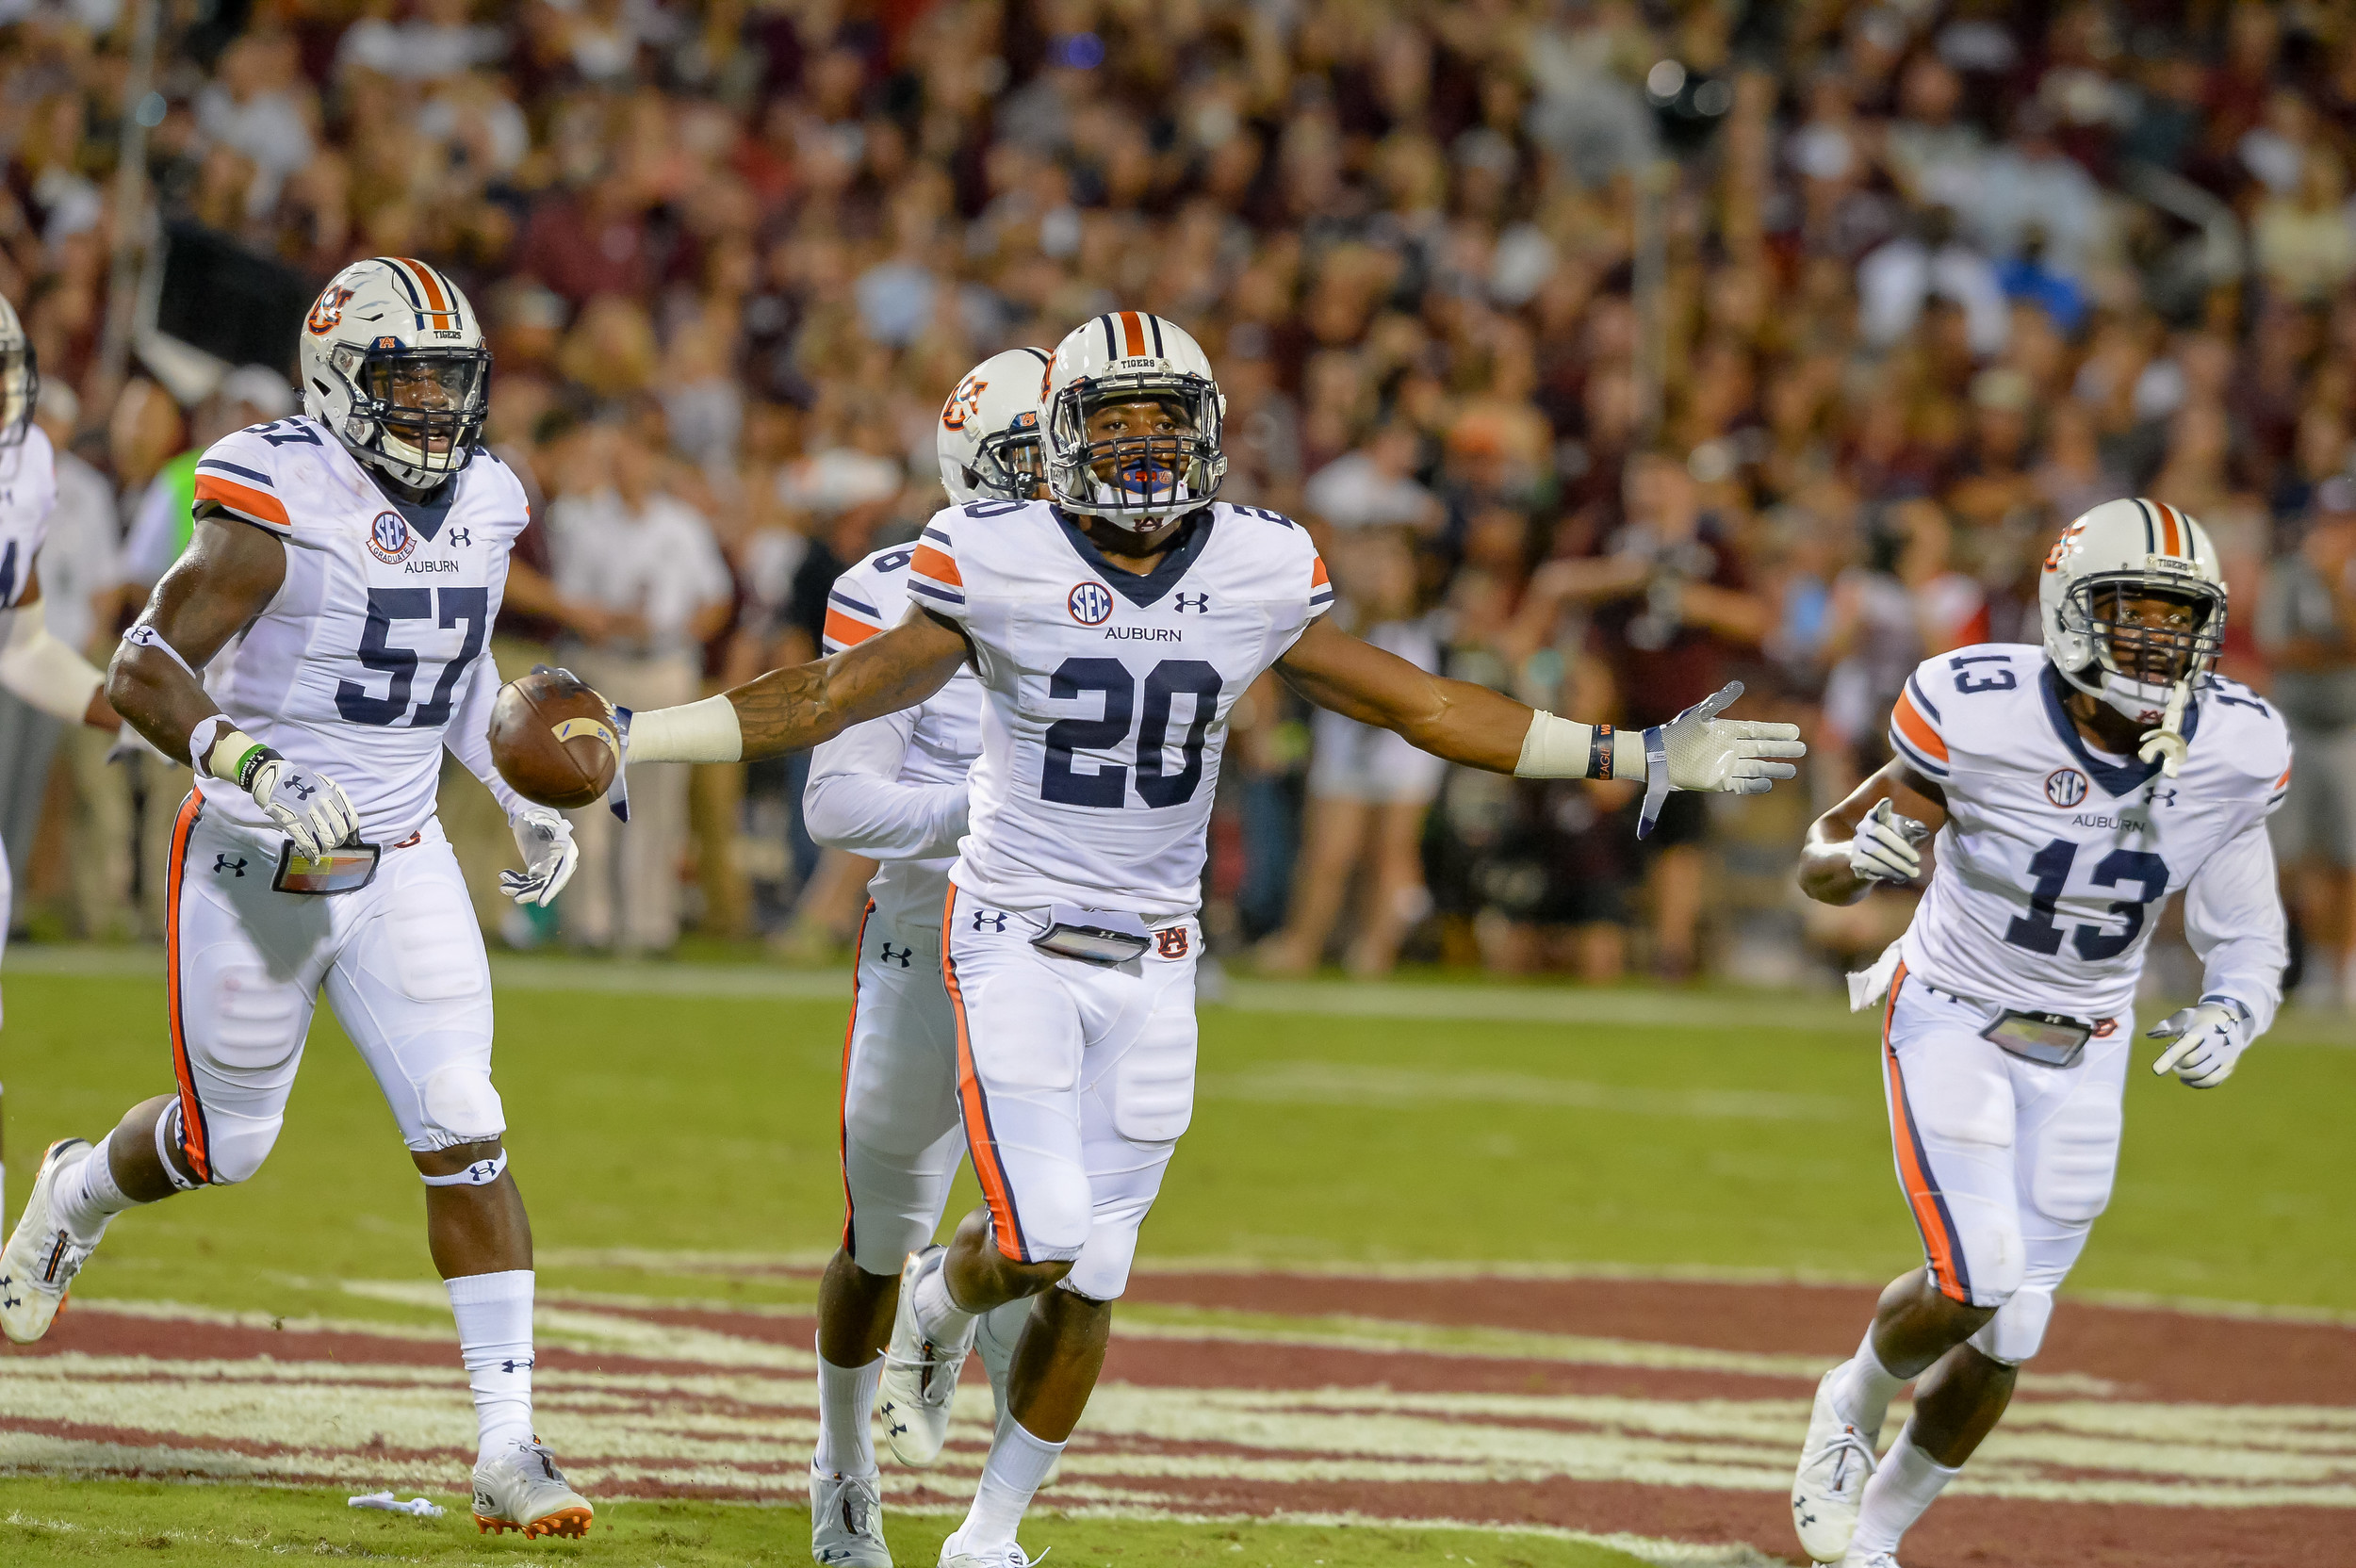 Auburn Tigers defensive back Jeremiah Dinson (20) celebrates after intercepting a pass during the first half of Saturday's game, at Davis Wade Stadium in Starkville, MS. Daily Mountain Eagle -  Jeff Johnsey